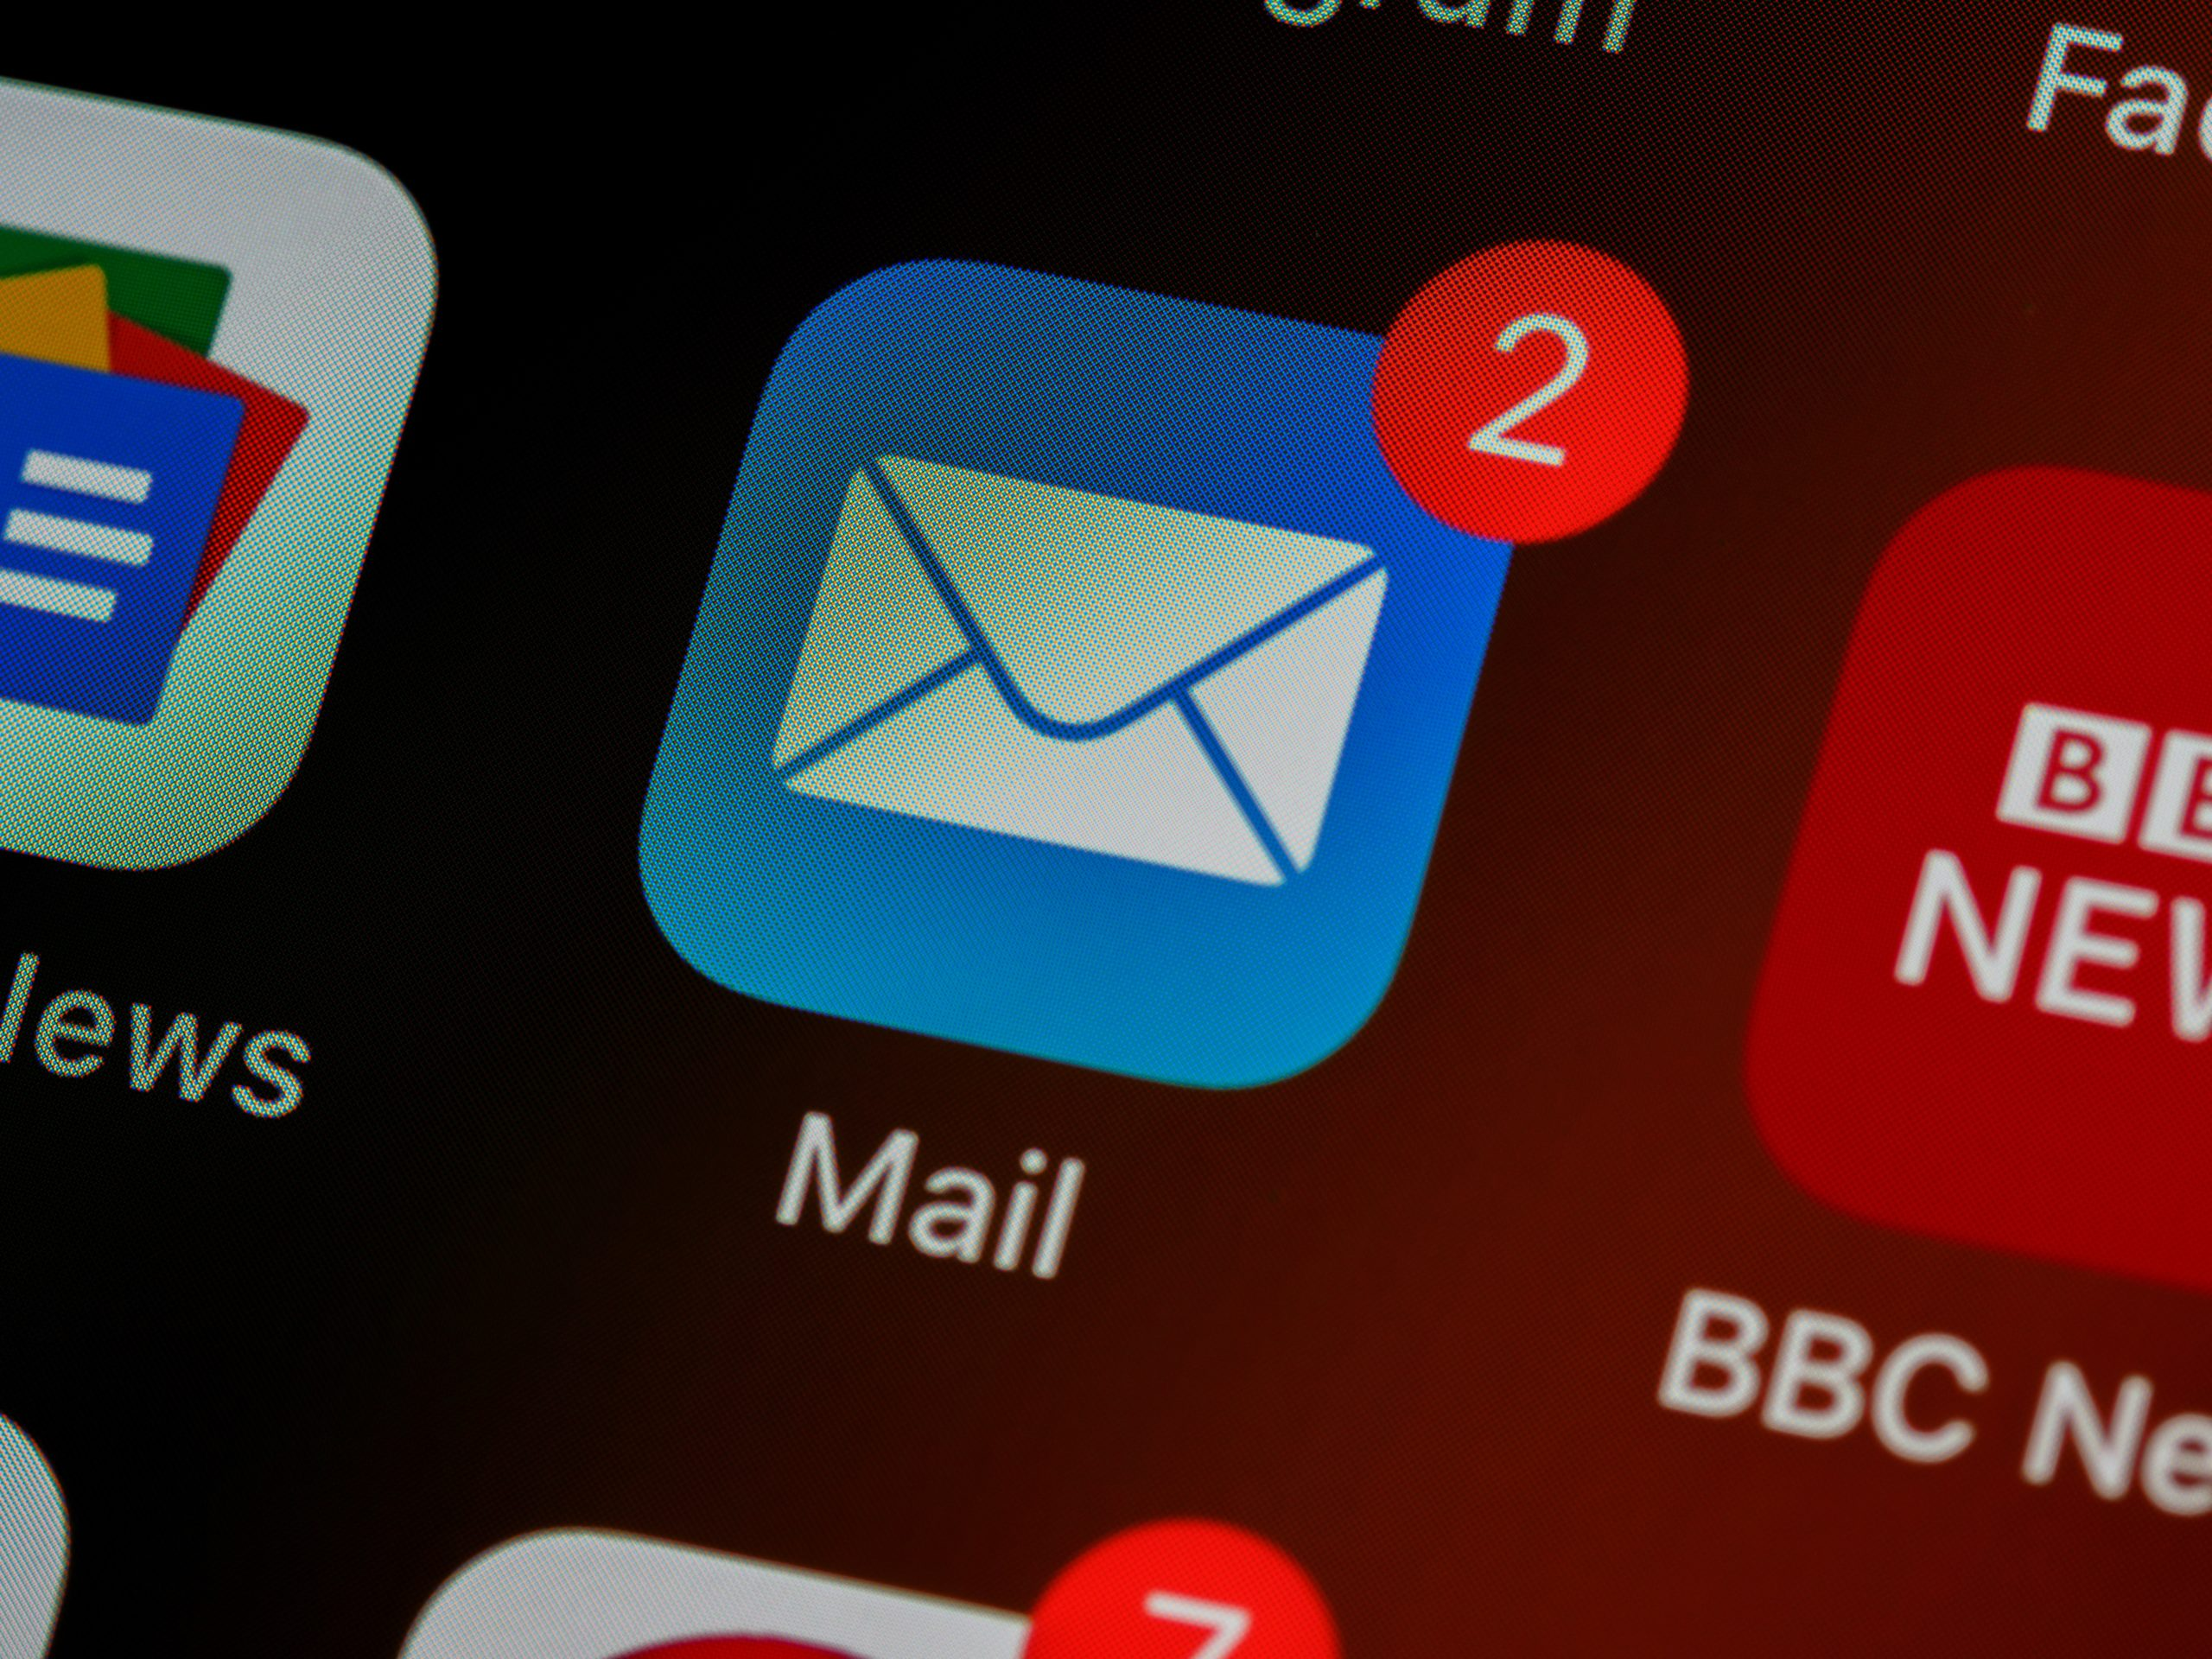 Image of an email icon on a screen.